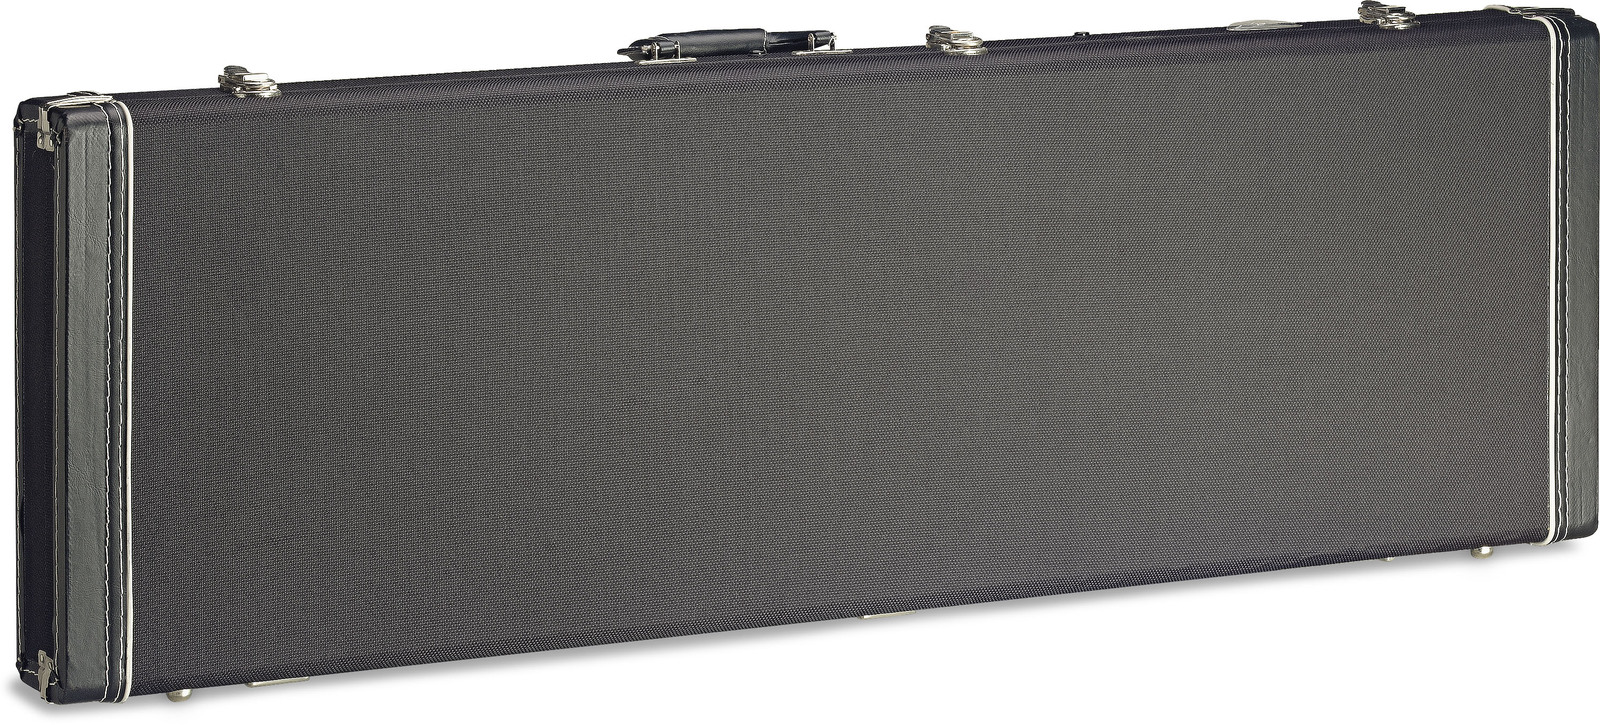 57275-Dolphin-Premium-Black-Tweed-Deluxe-Square-Hardcase-for-Electric-Bass-Guitar.jpg